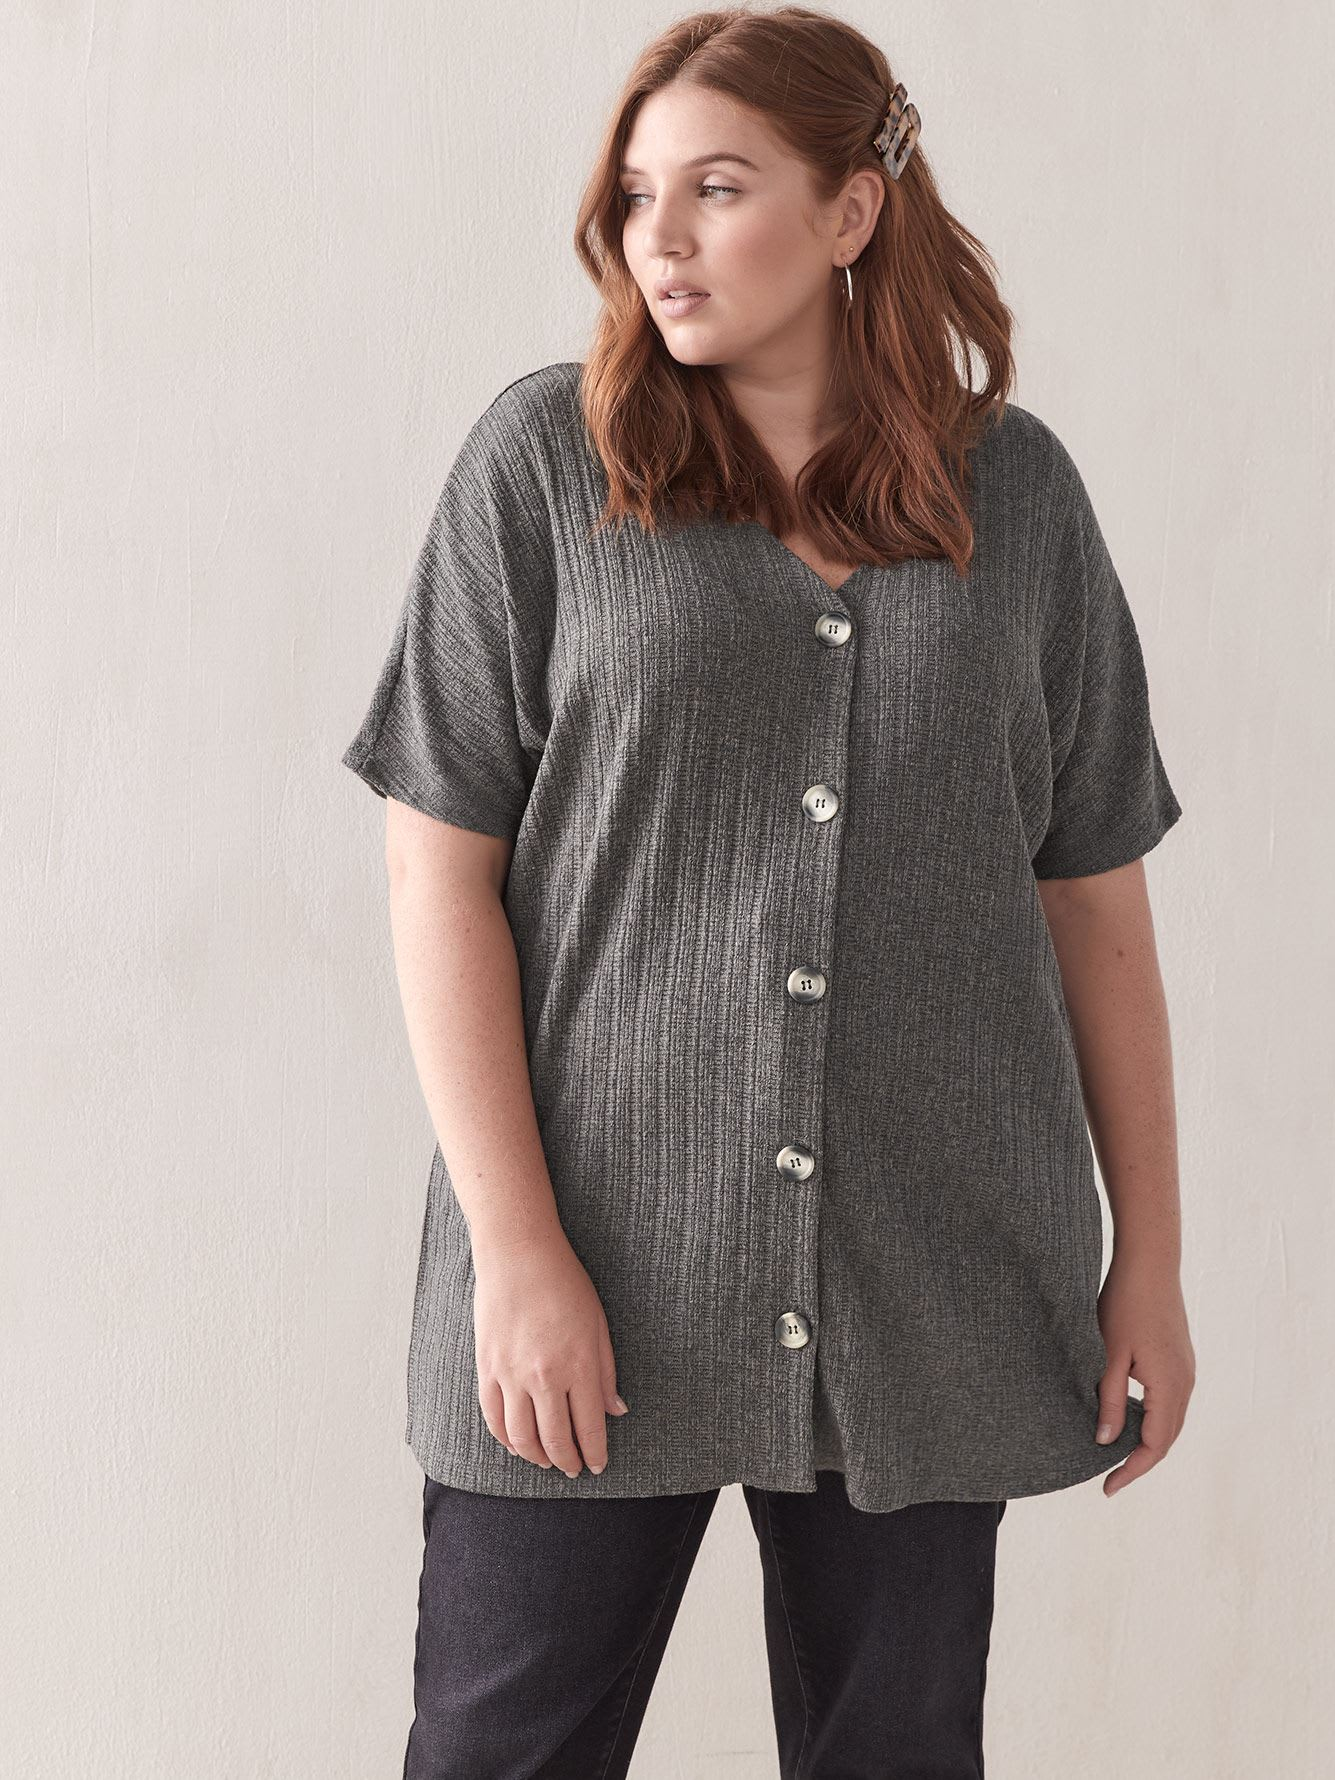 Short-Sleeve Button-Down Top - Addition Elle